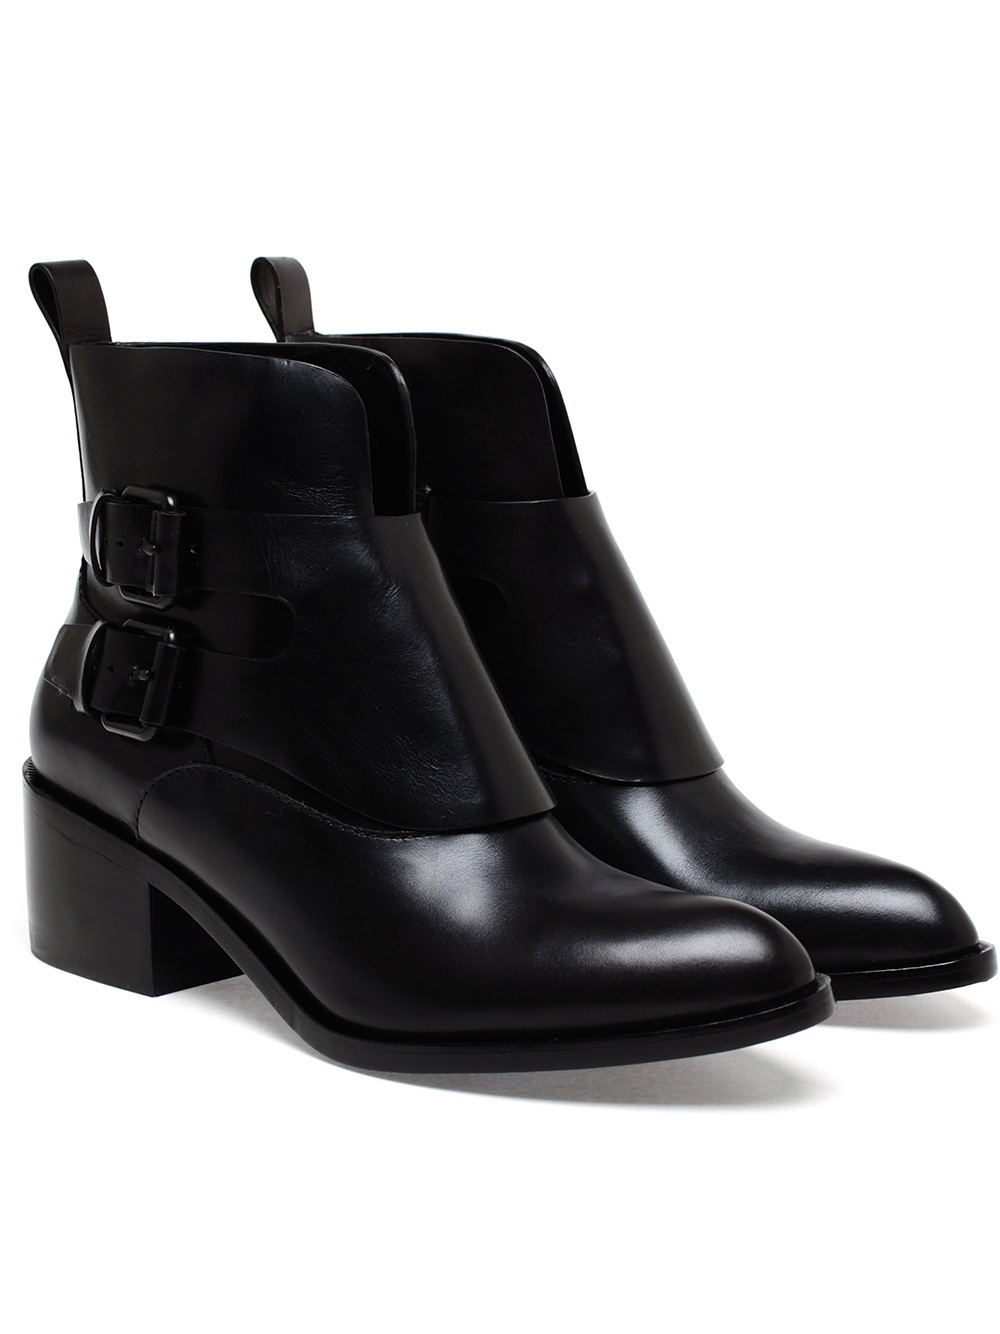 Leather Ankle Boots Womens OxtokgY0